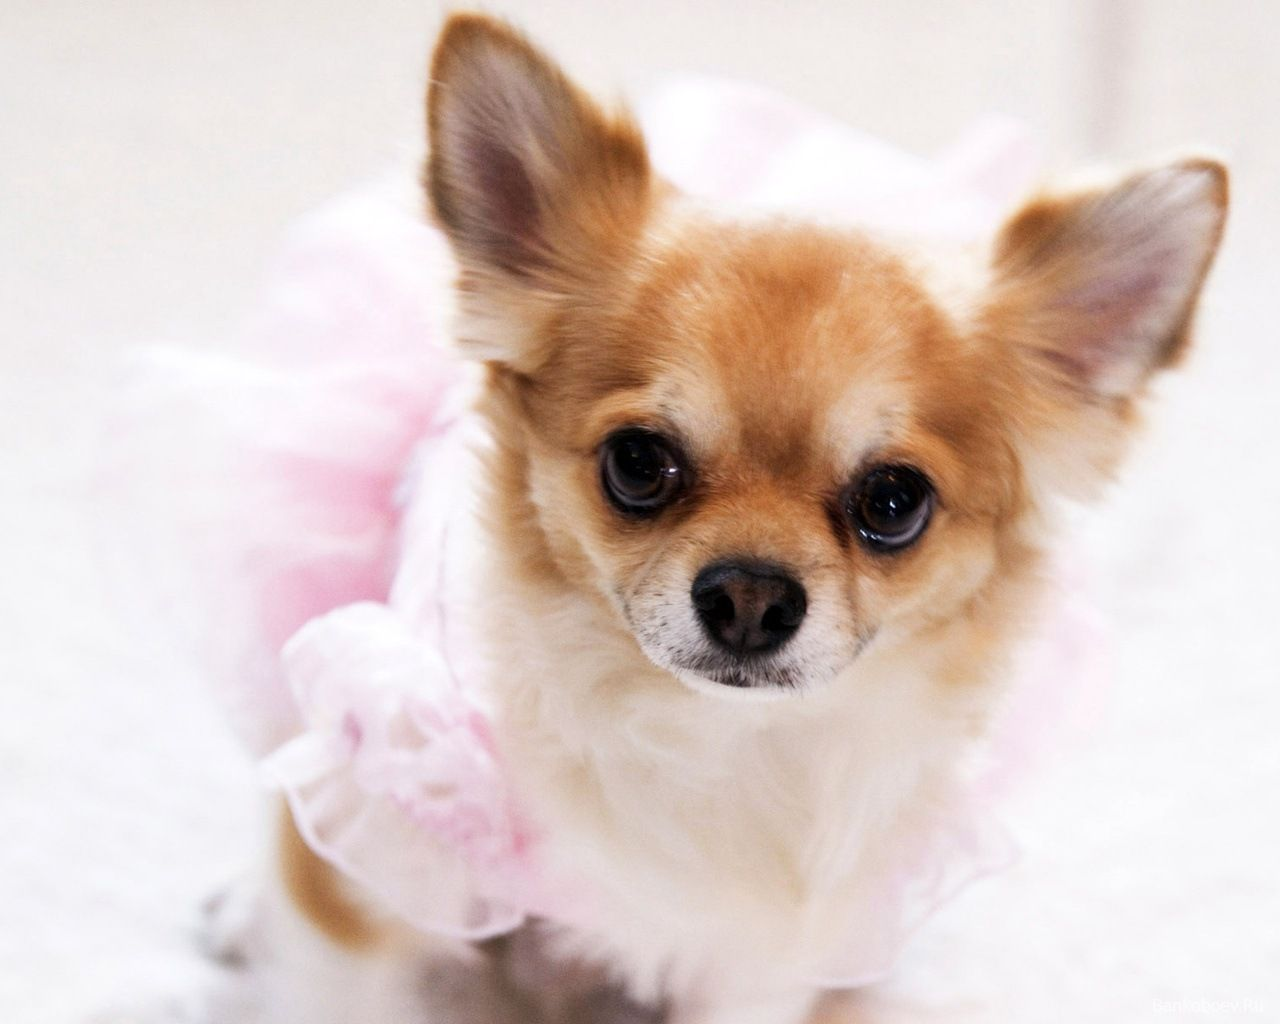 Pictures Of Chihuahuas Wallpaper Chihuahua 1600 X 1200 On The Desktop High Quality Chihuahua Puppies Funny Dogs Chihuahua